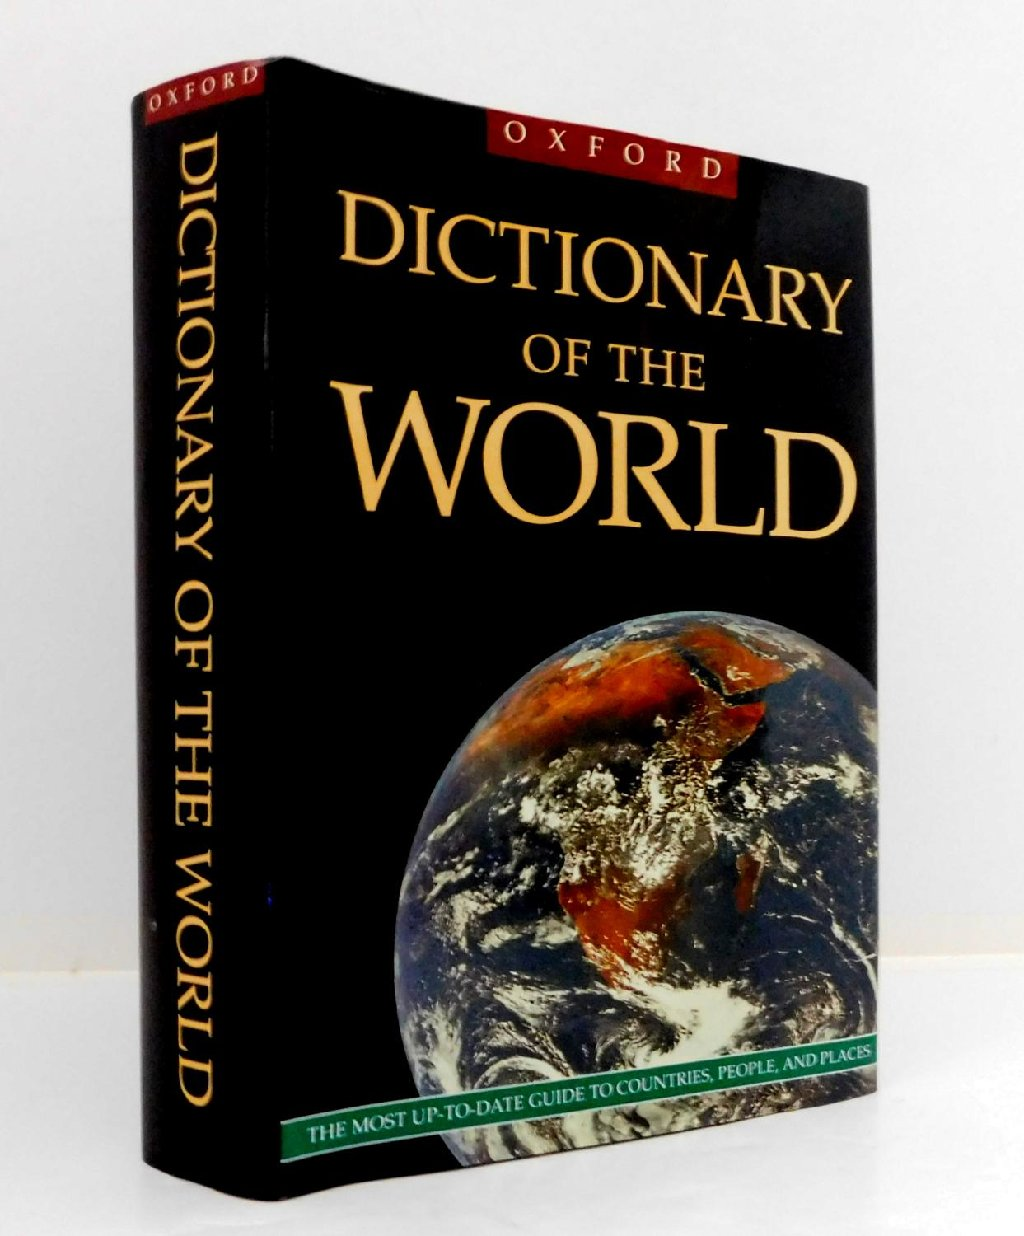 OXFORD DICTIONARY OF THE WORLD